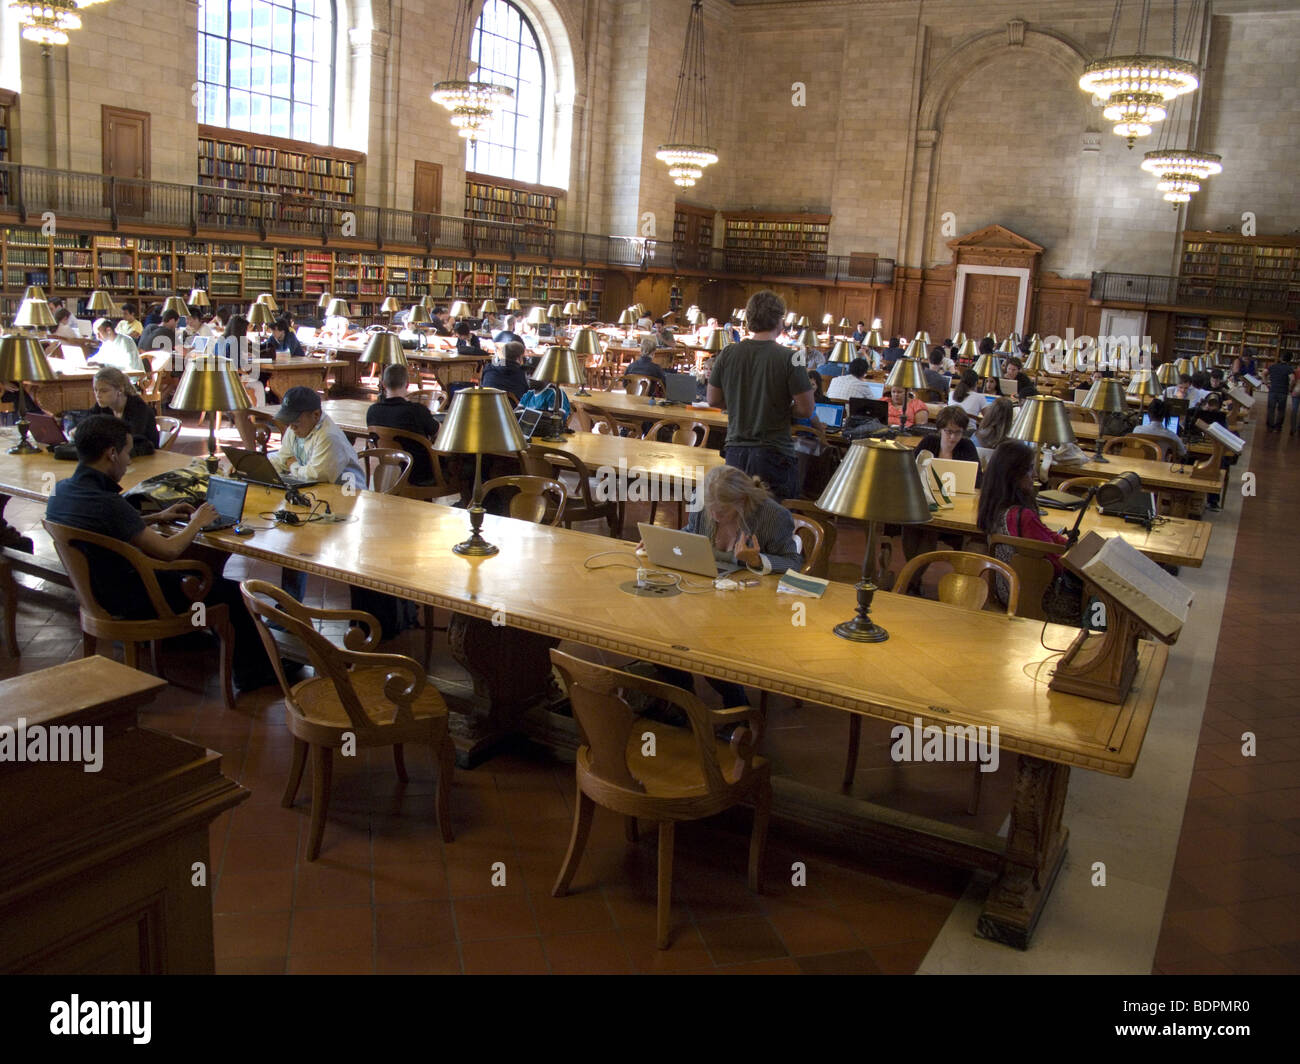 Reference reading room, New York Public Library, 5th Ave. & 42nd St. NYC - Stock Image